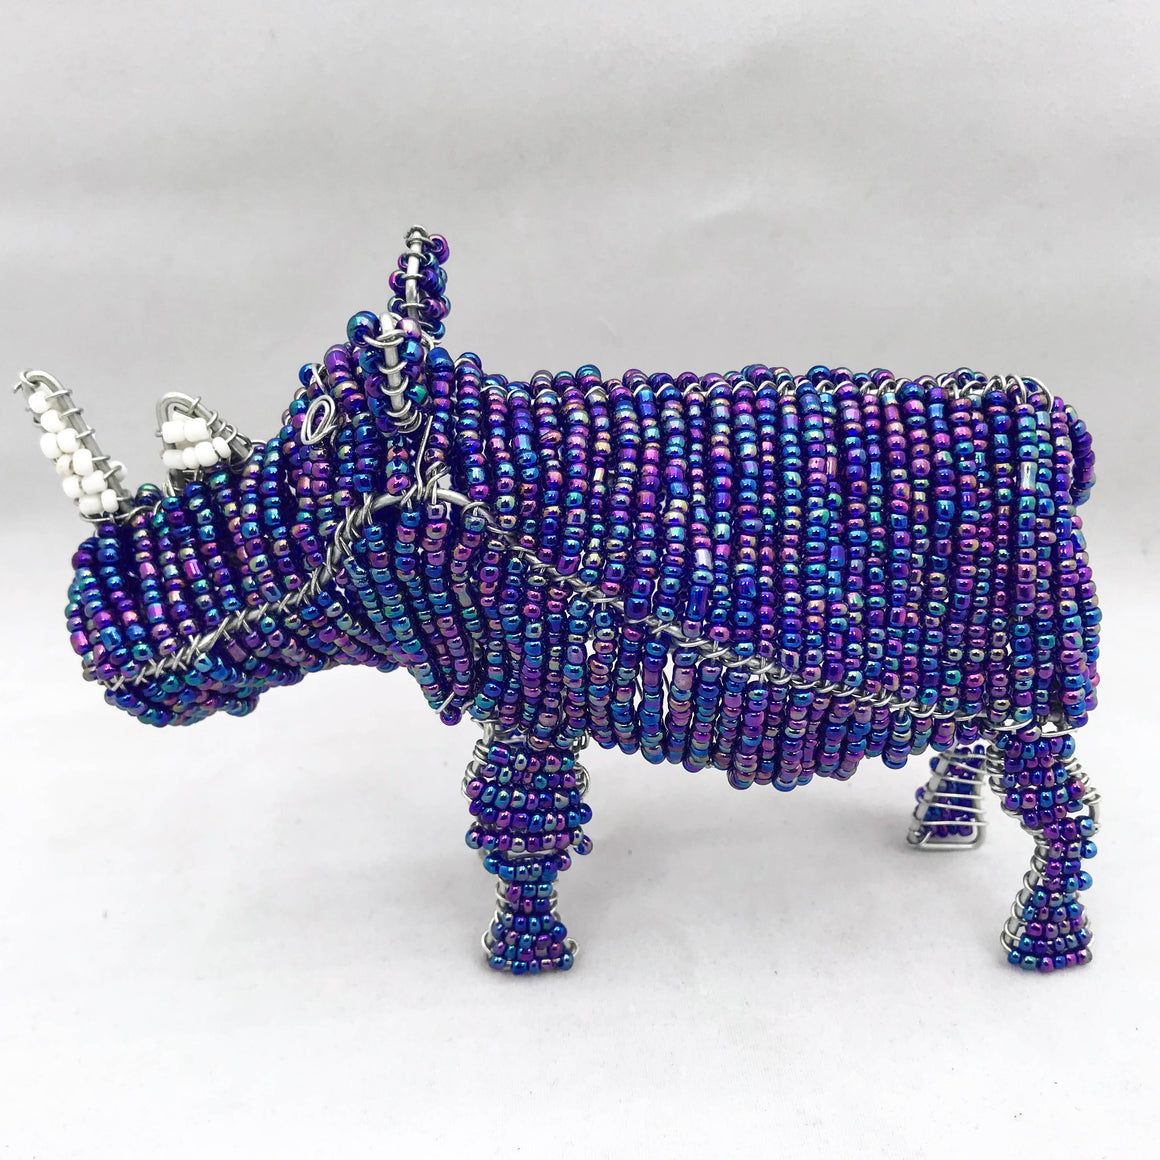 Bead and Wire Rhino